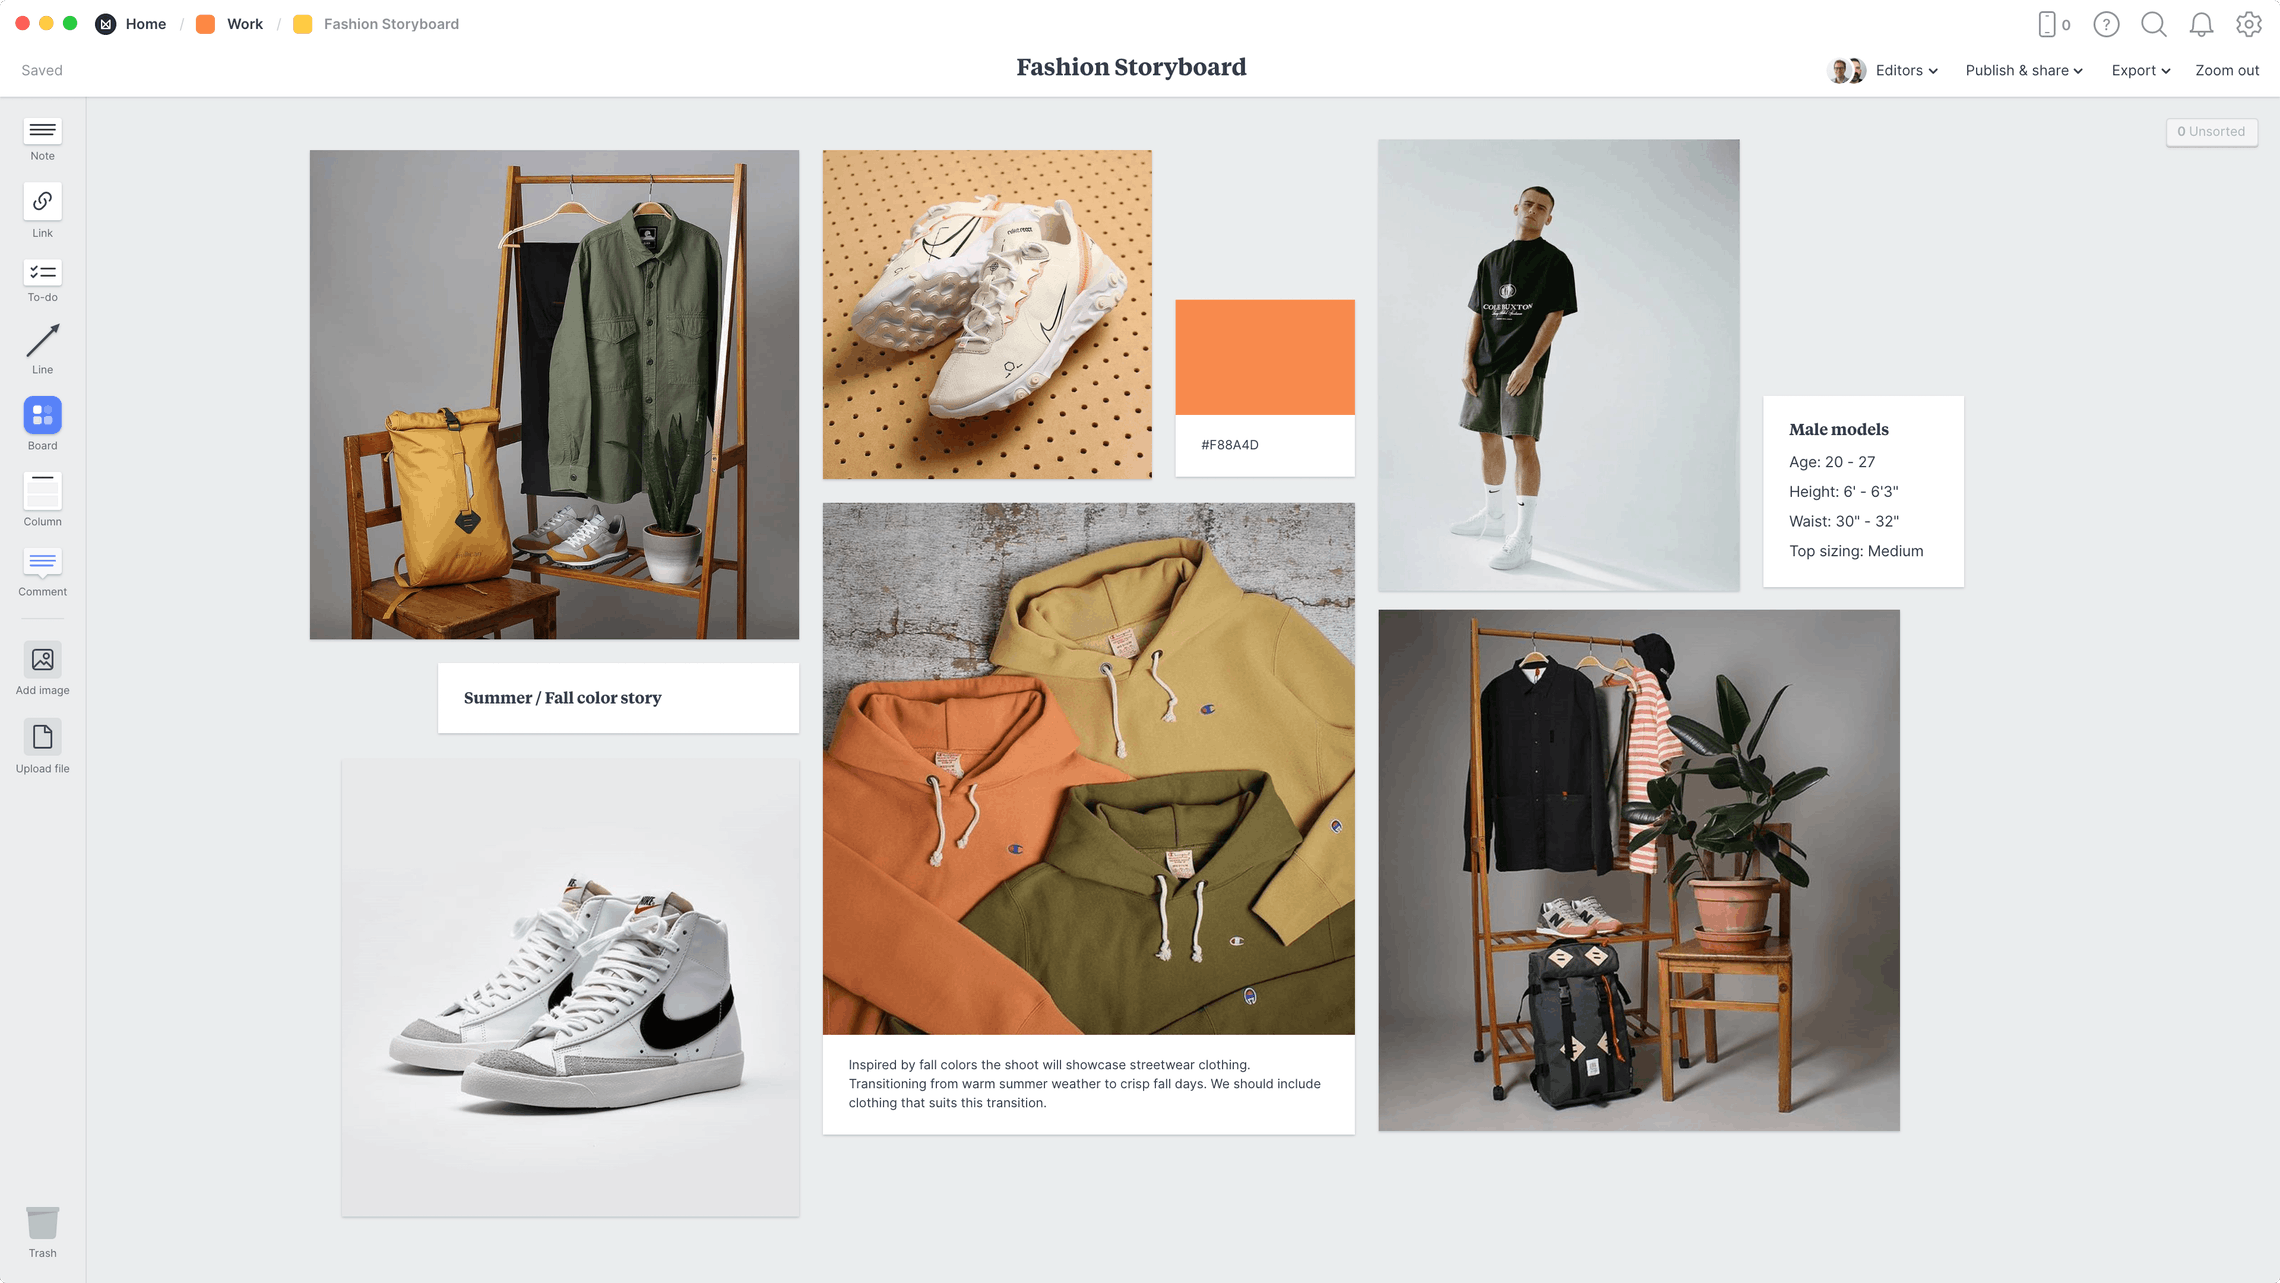 Fashion Storyboard Template, within the Milanote app